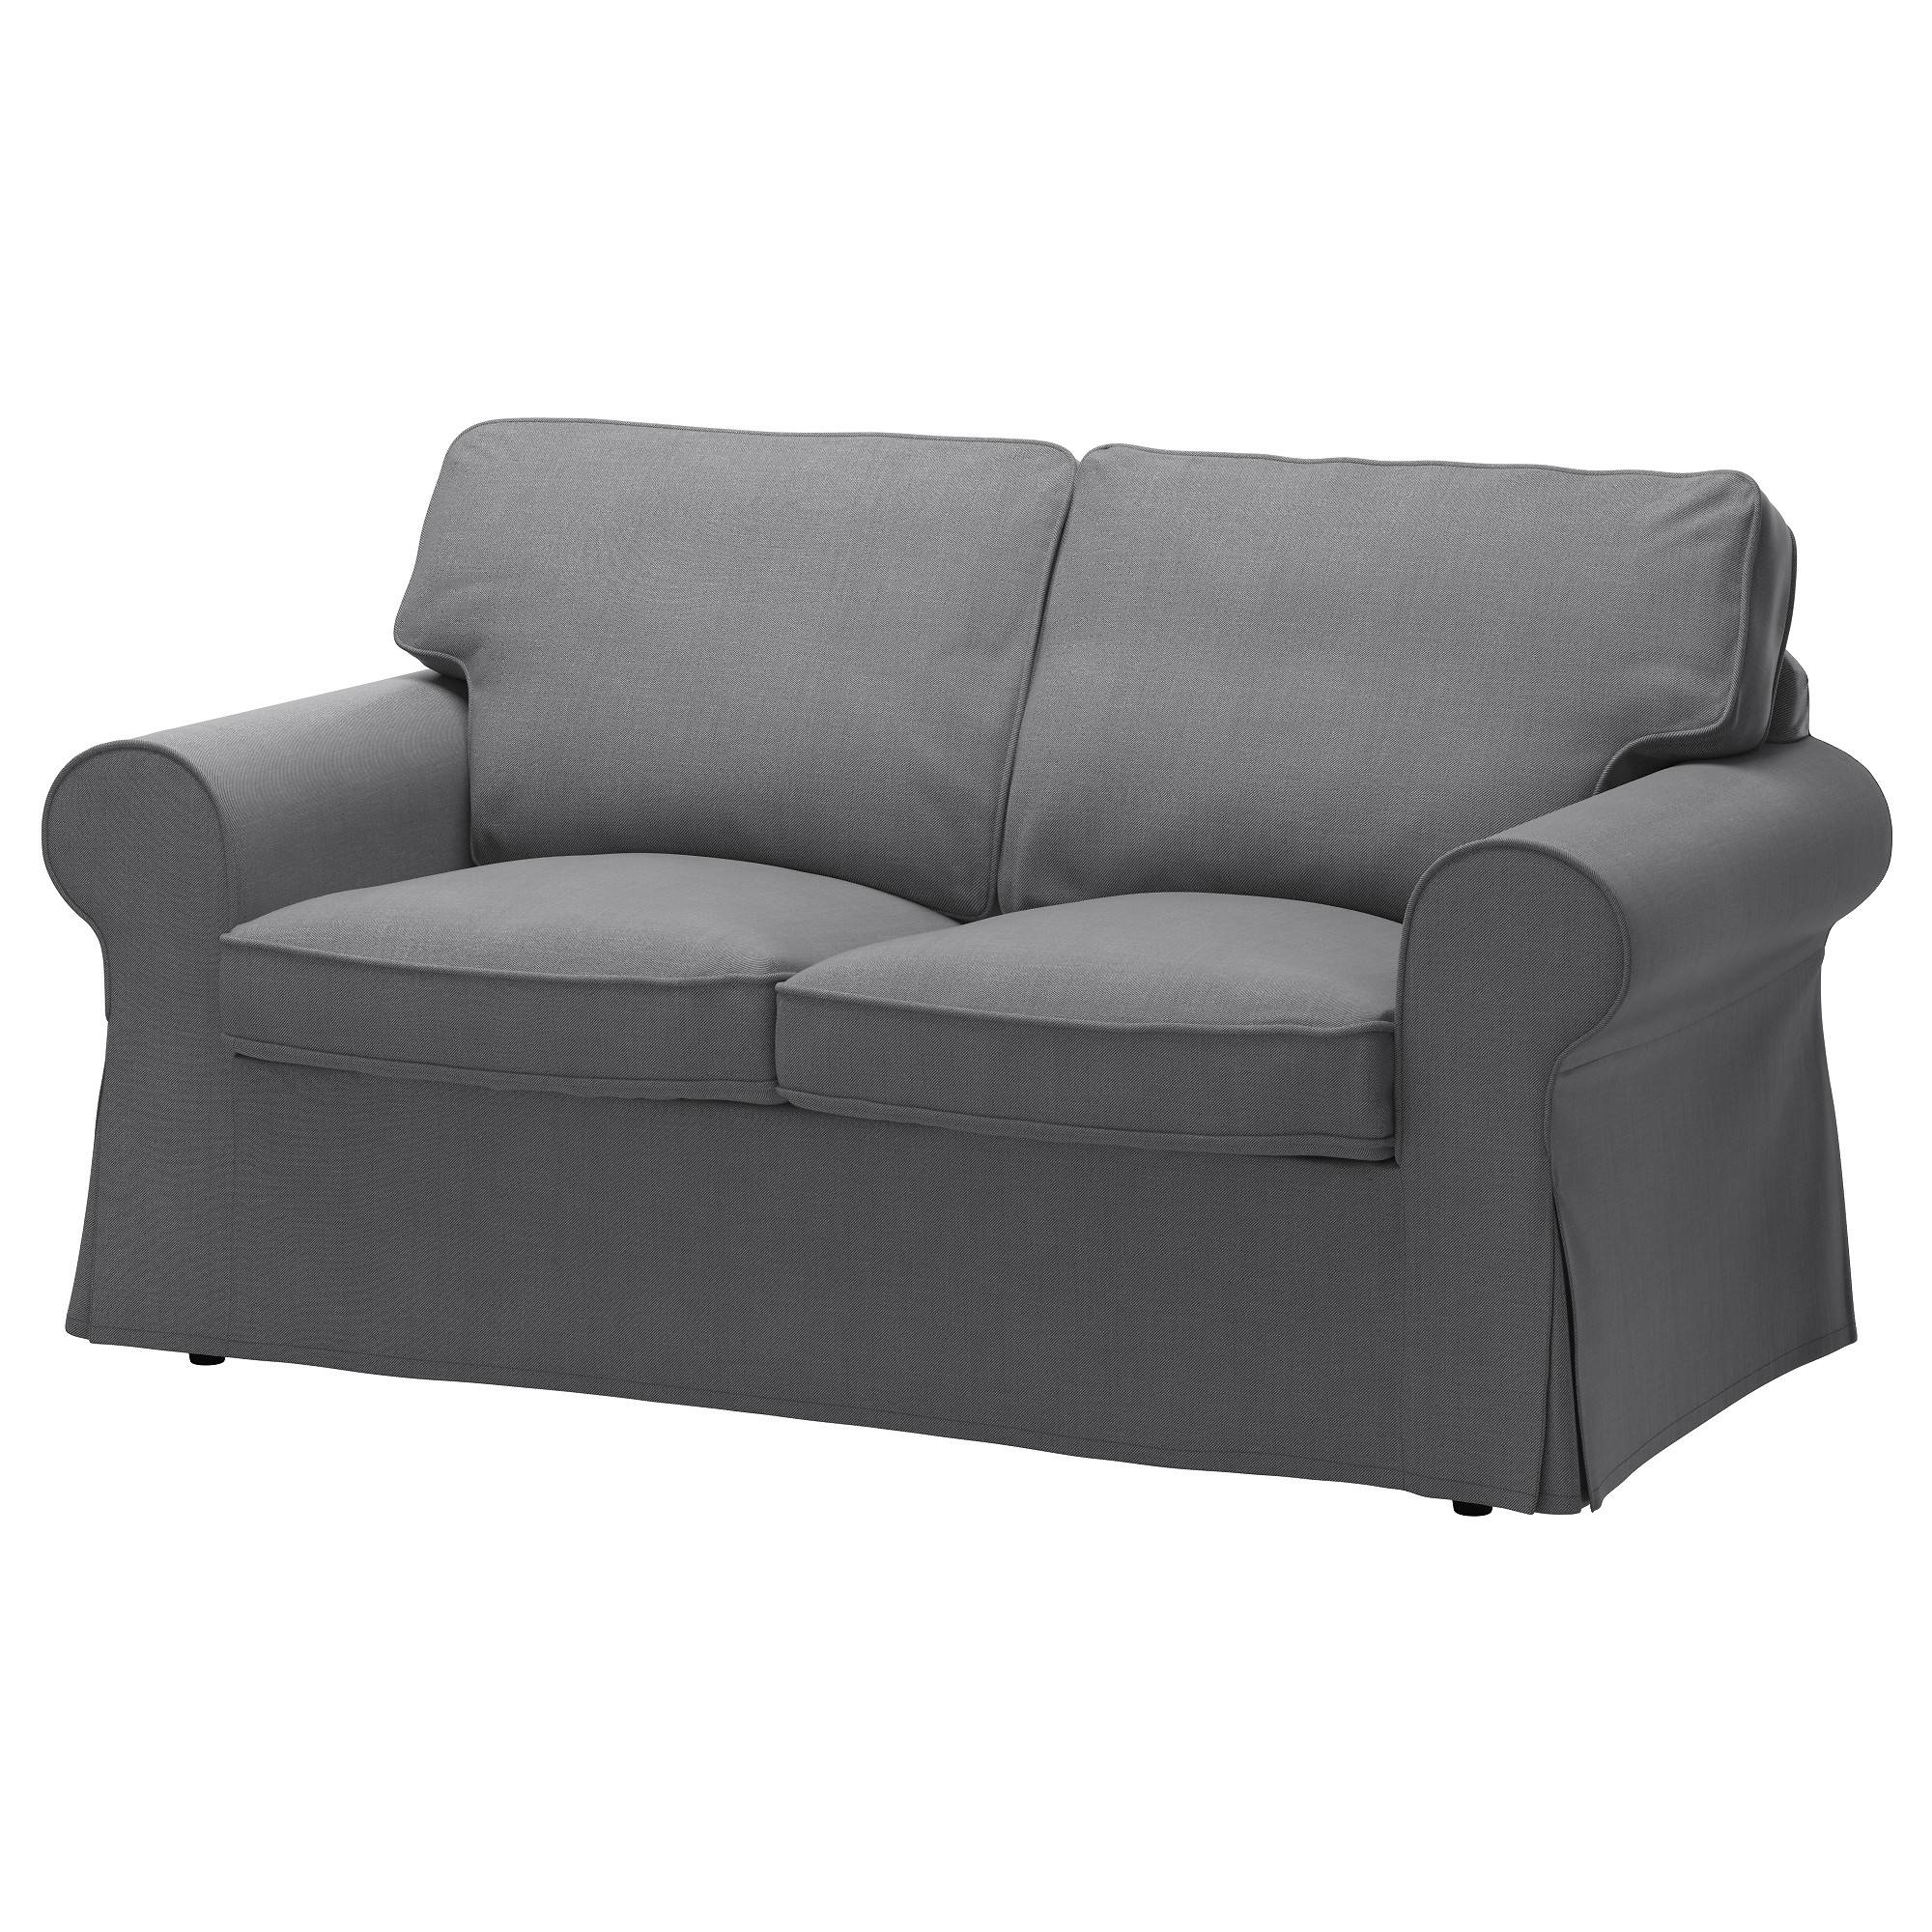 Small Sofa & 2 Seater Sofa | Ikea in 2 Seater Sofas (Image 24 of 30)